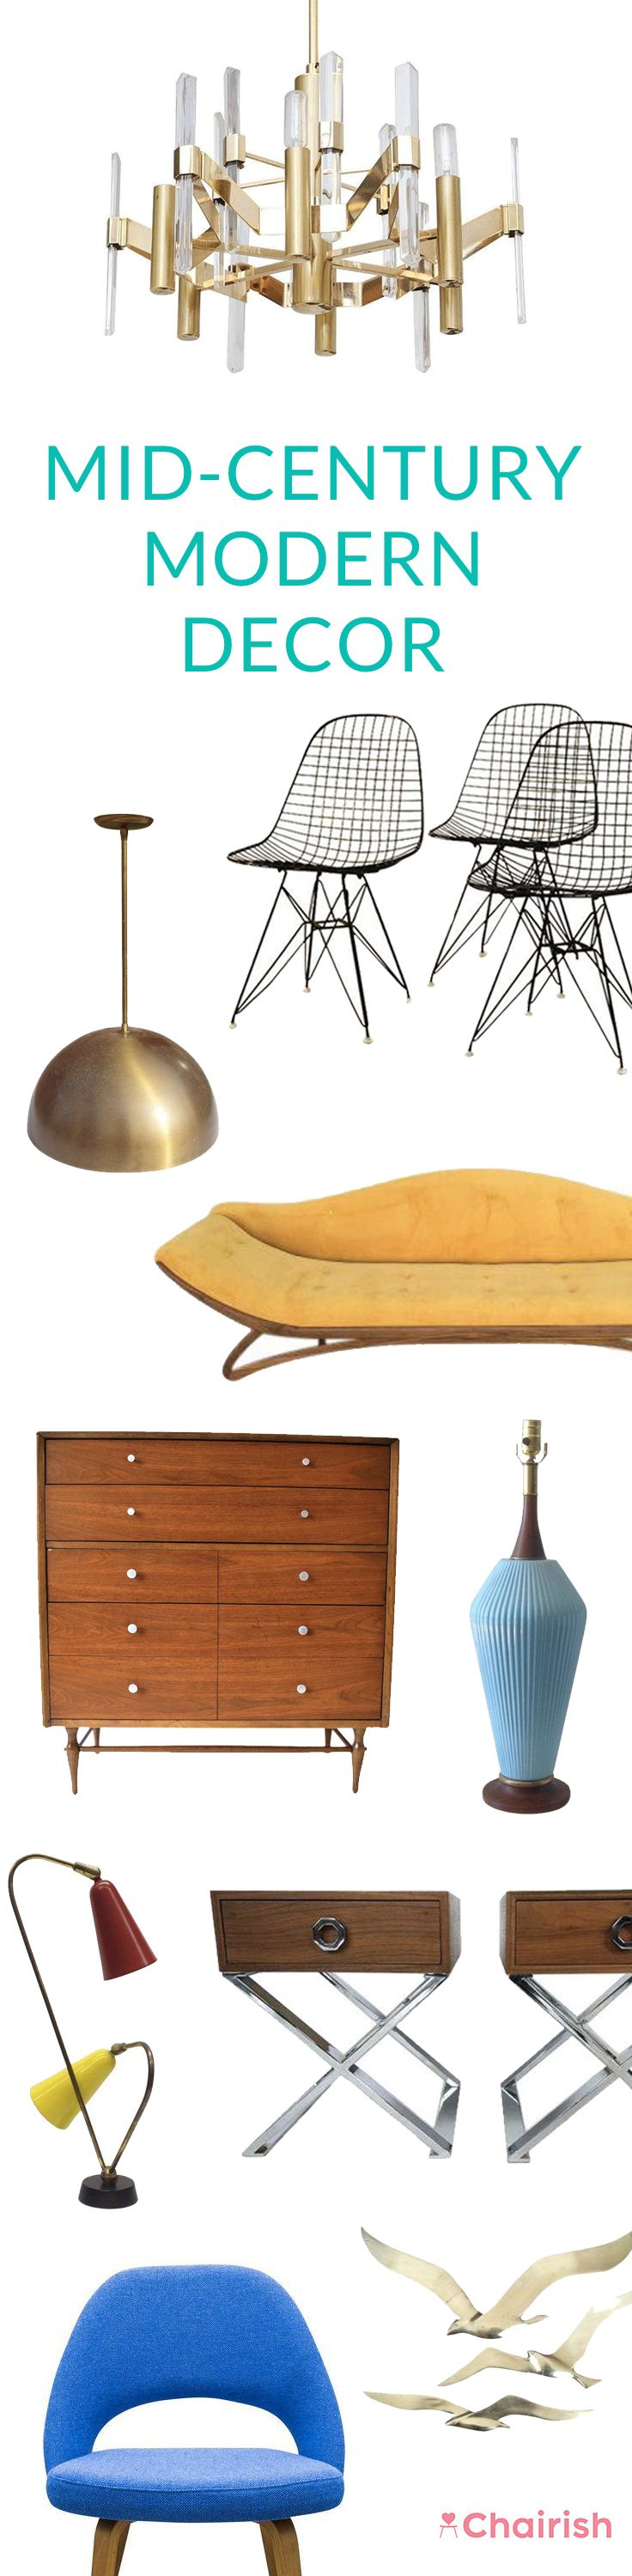 We're mad for the sharp silhouettes, low-slung ease and warm tones inherent in Mid-Century Modern design. Score a classic from our stash.